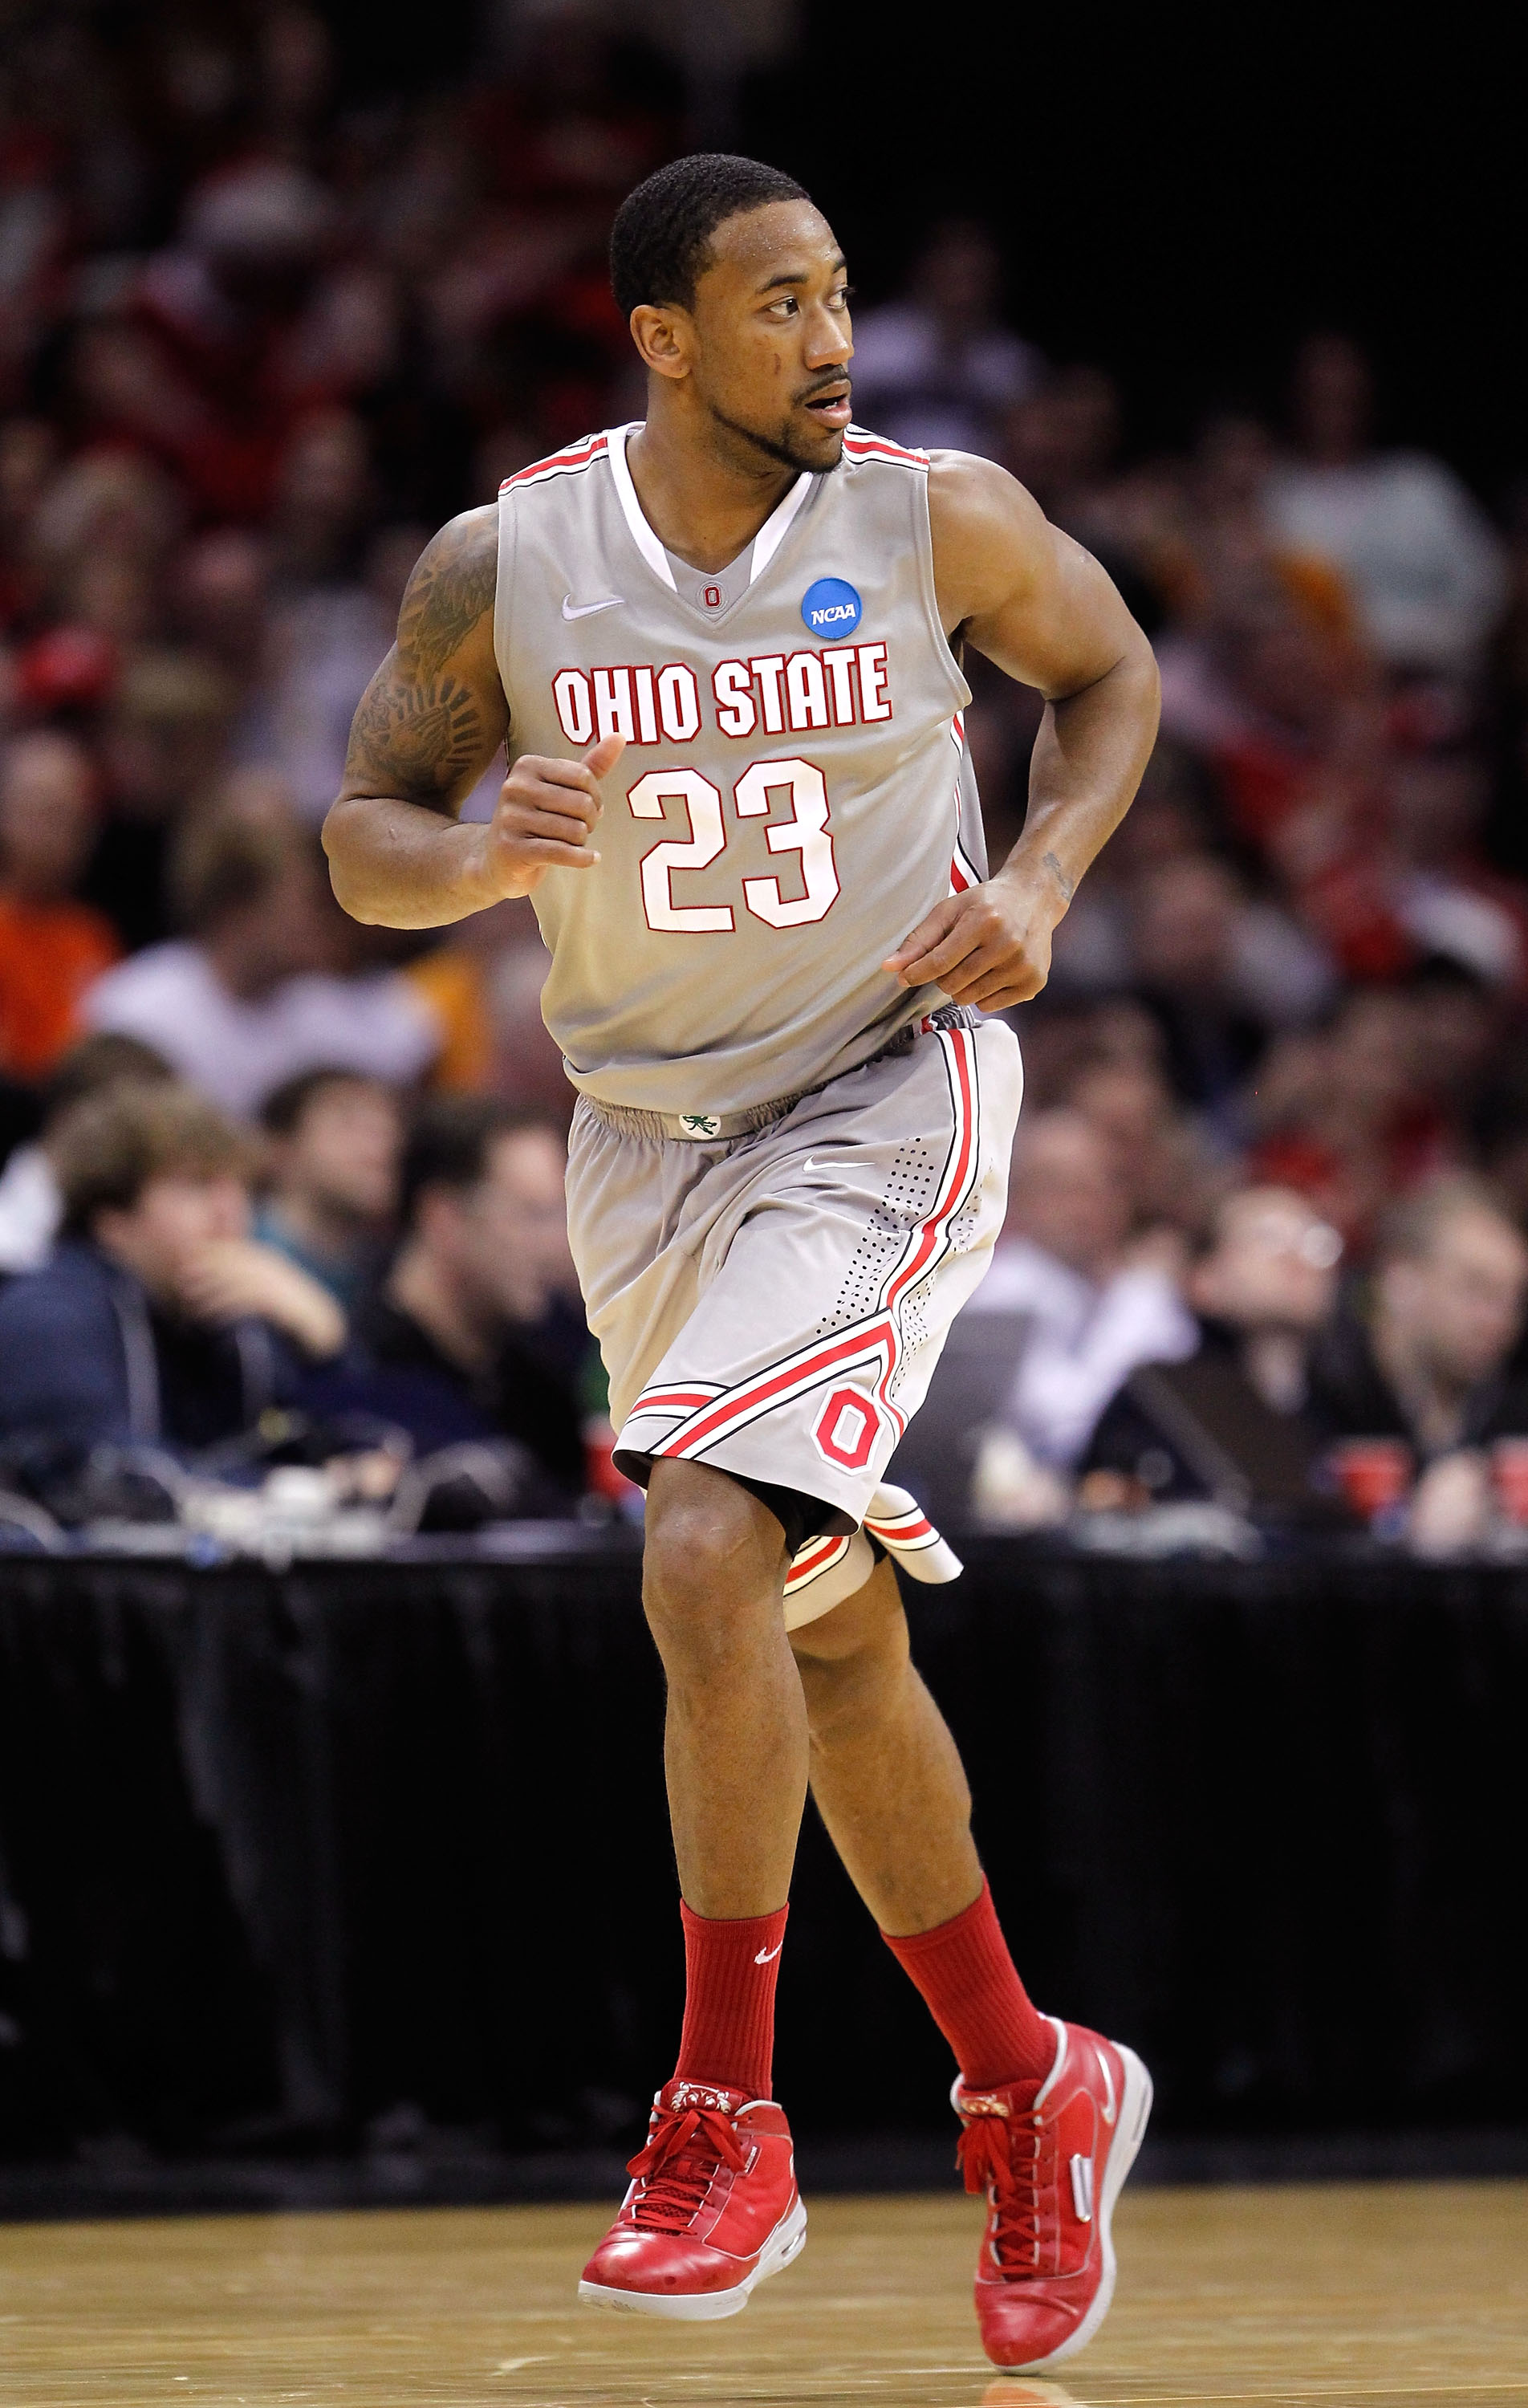 CLEVELAND, OH - MARCH 20: David Lighty #23 of the Ohio State Buckeyes runs up court after a play against the George Mason Patriots during the third of the 2011 NCAA men's basketball tournament at Quicken Loans Arena on March 20, 2011 in Cleveland, Ohio.